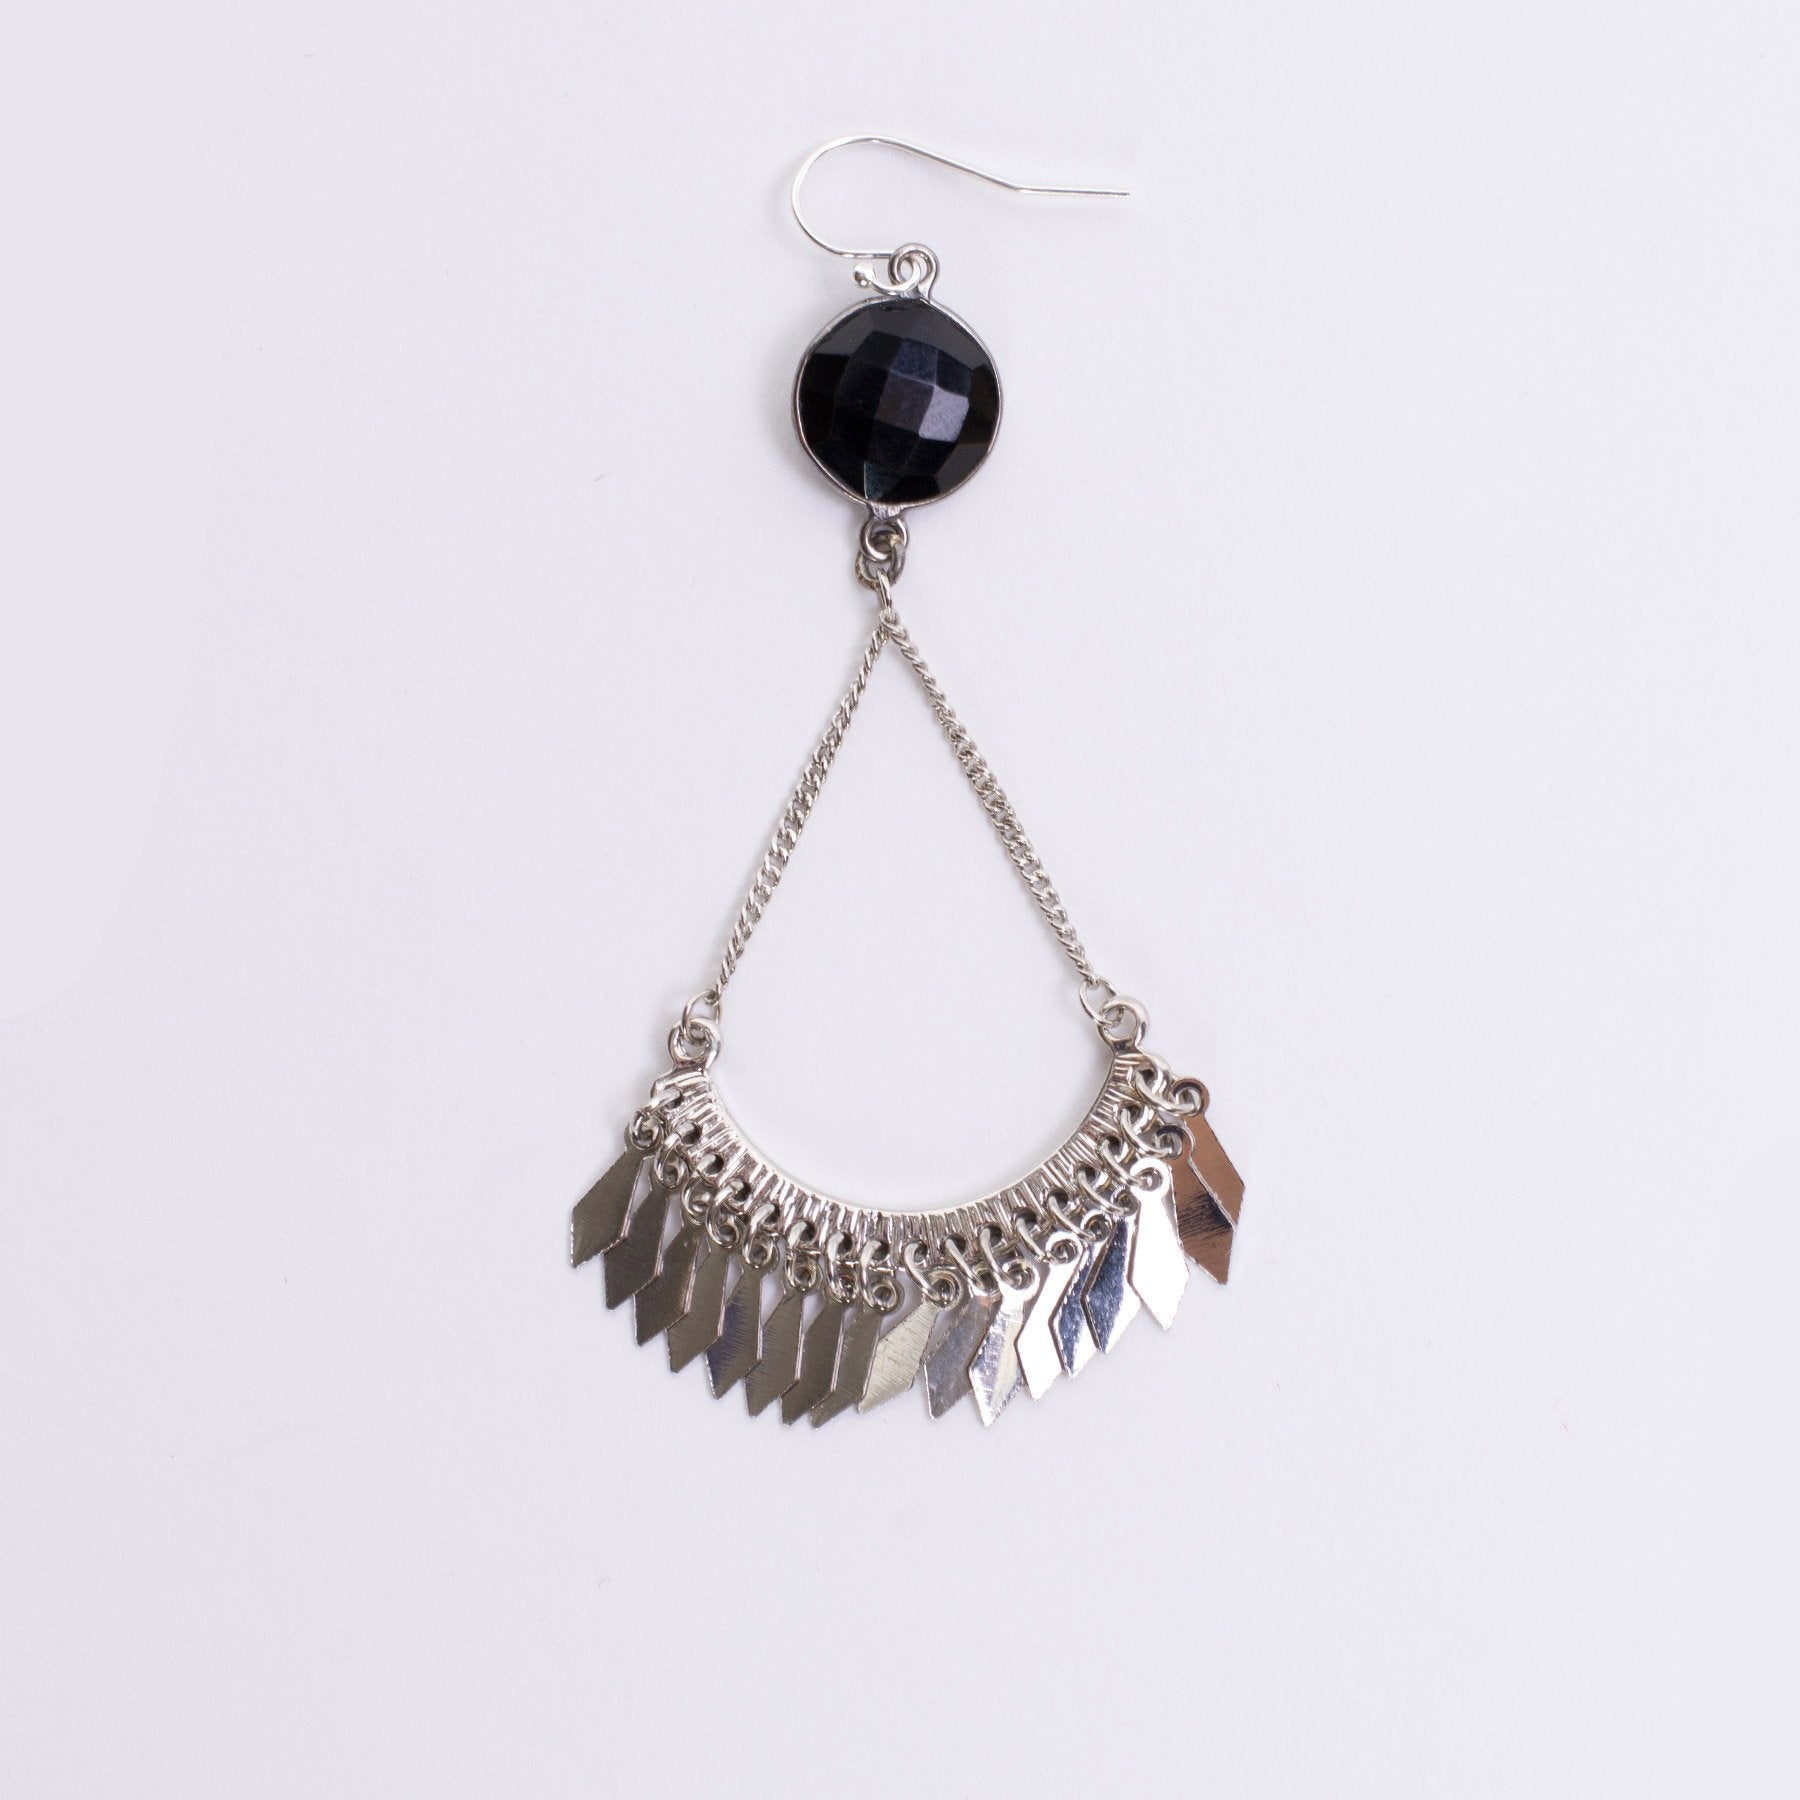 mercaldo onyx black michele gold jewelry earrings